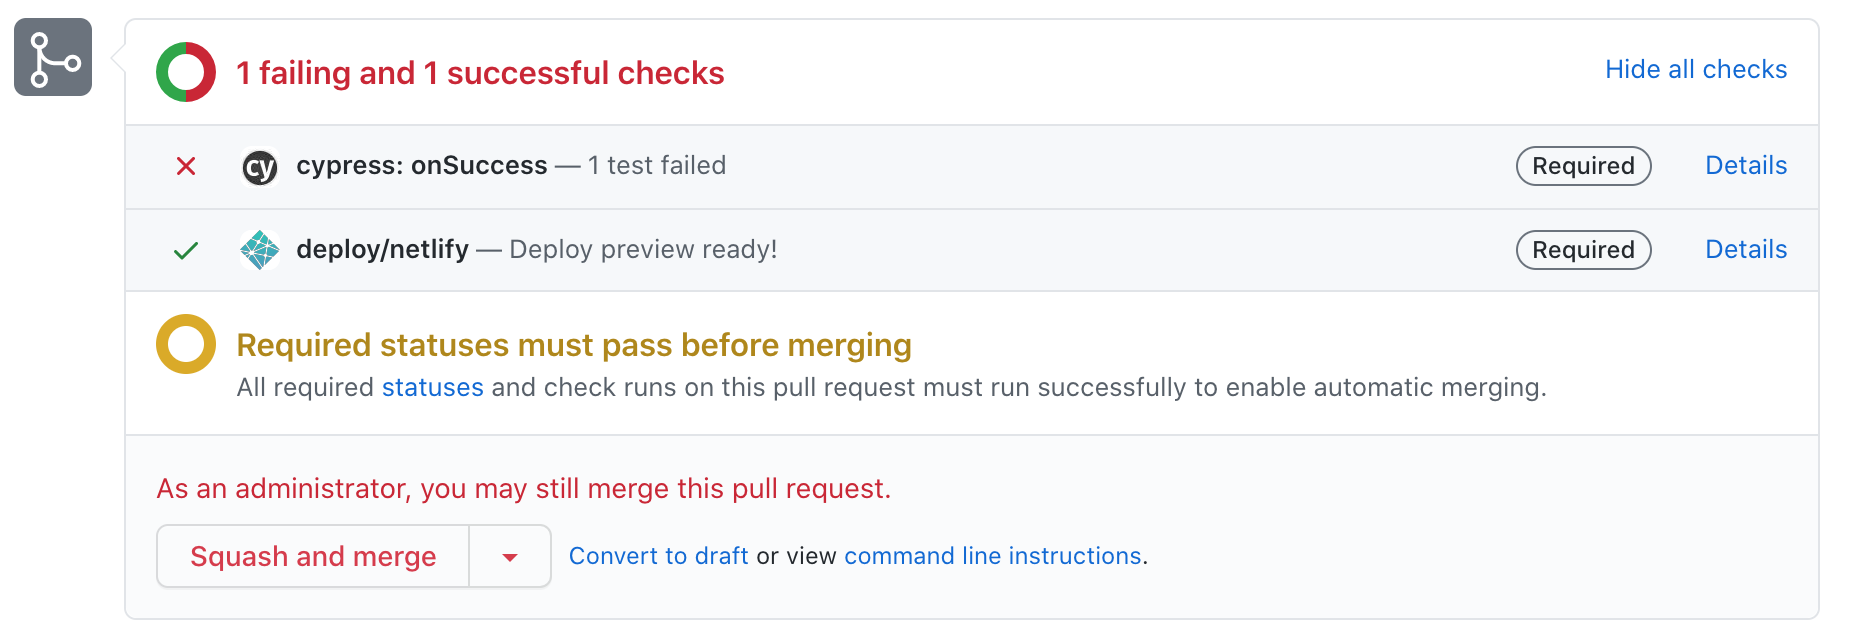 Pull request with failing tests cannot be merged